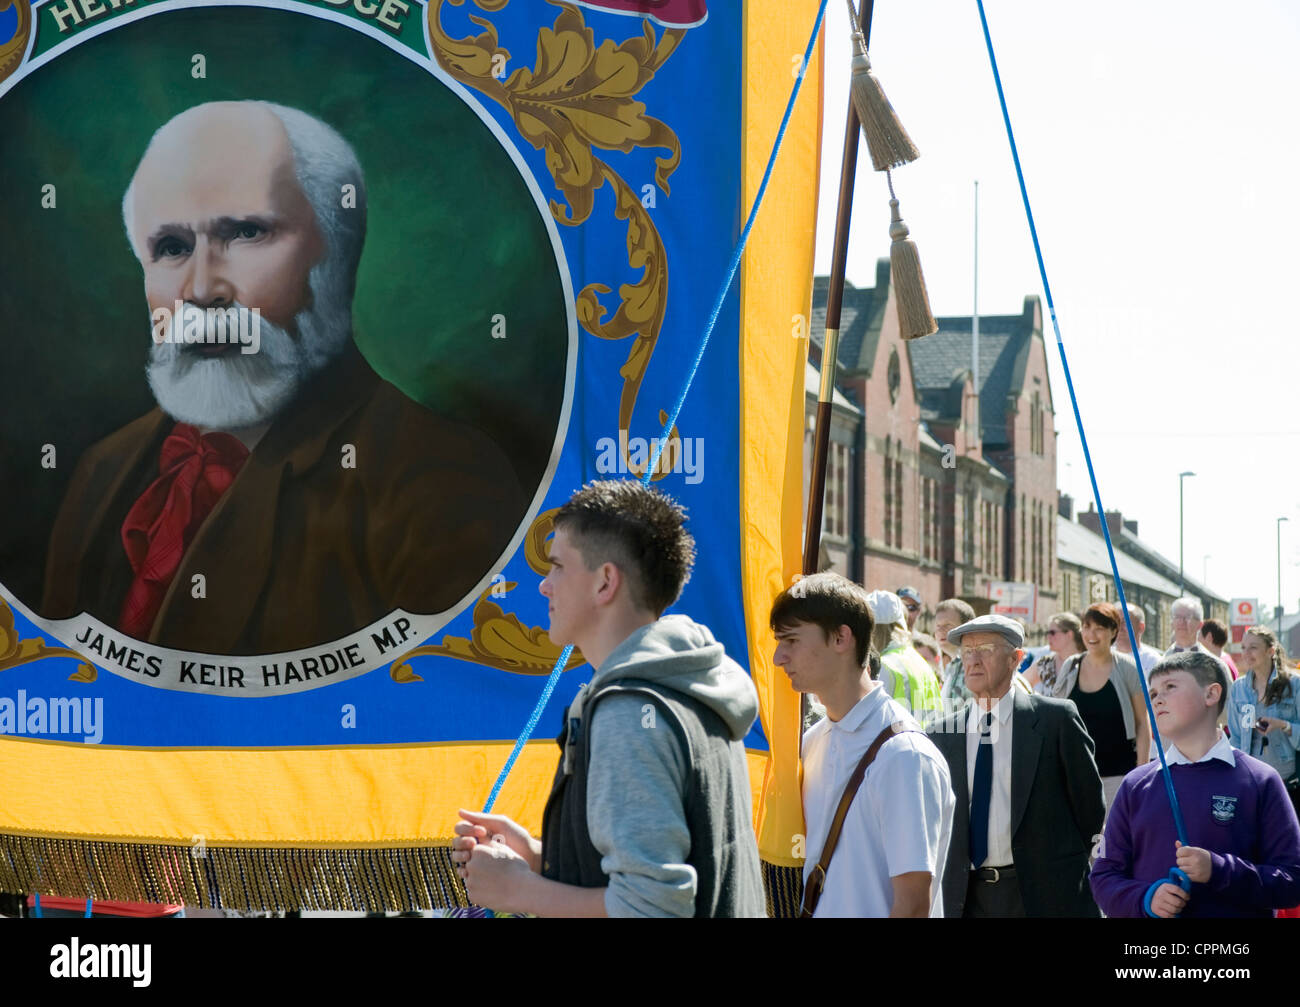 National Union of Mineworkers banner of Keir Hardie at commemoration of Felling mine disaster, Felling, Gateshead. - Stock Image